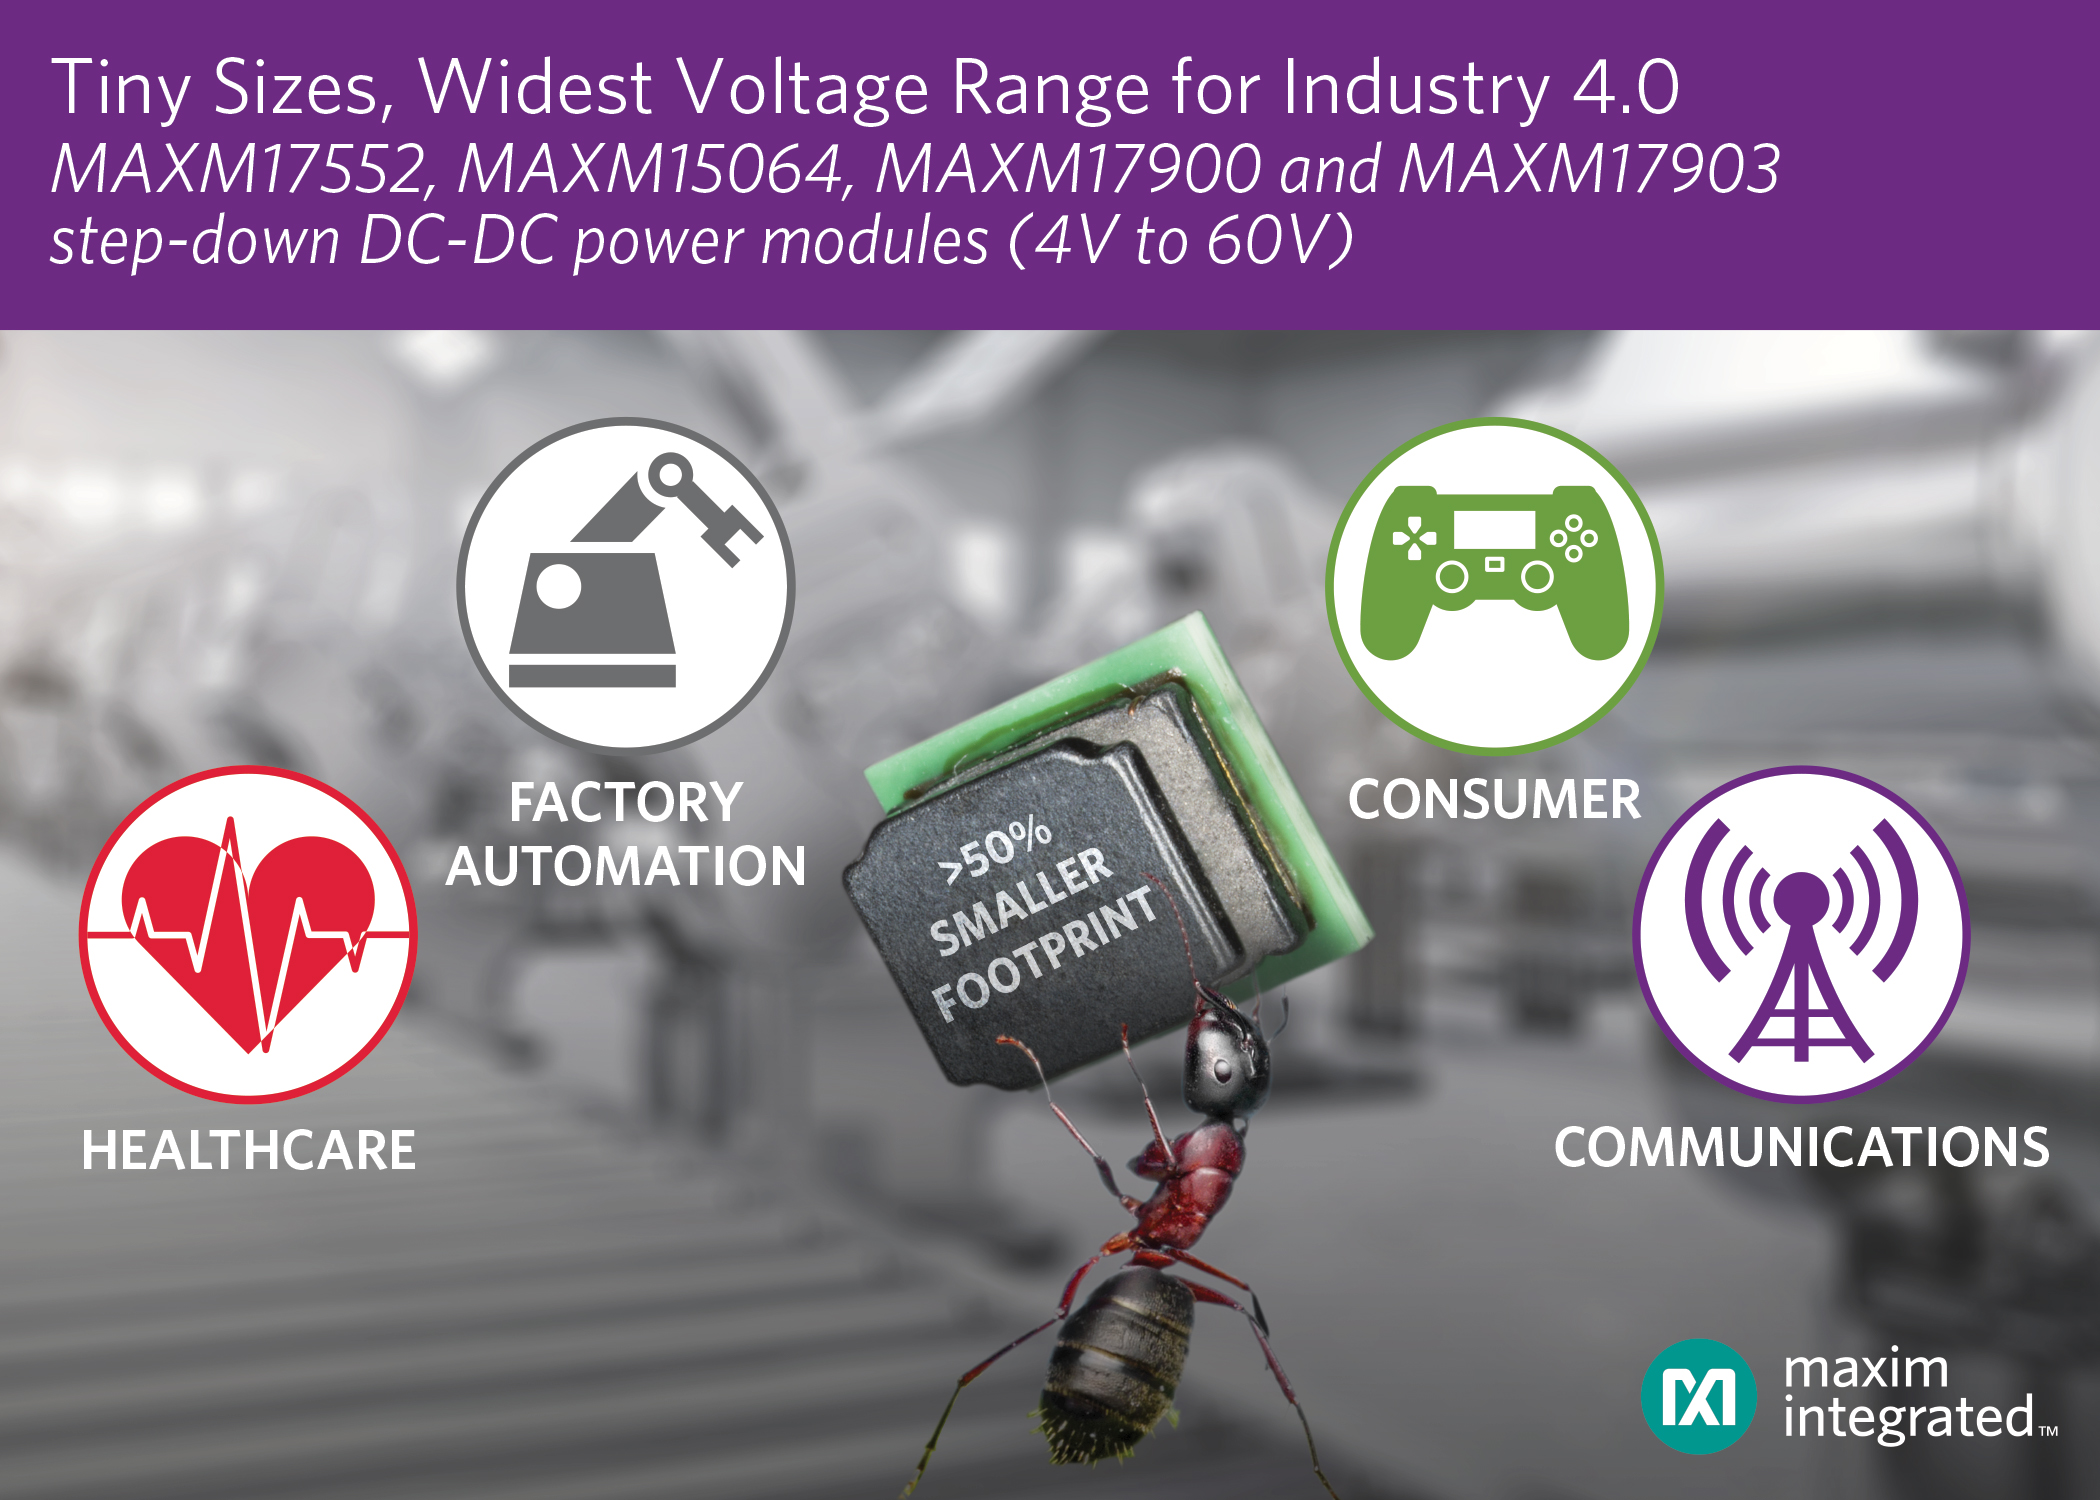 Power Systems Design Psd Information To Your Designs Led Driver Circuit 350ma Luxeon Electronics Projects Circuits Ultra Small Dc Modules Provide Voltages Up 60v